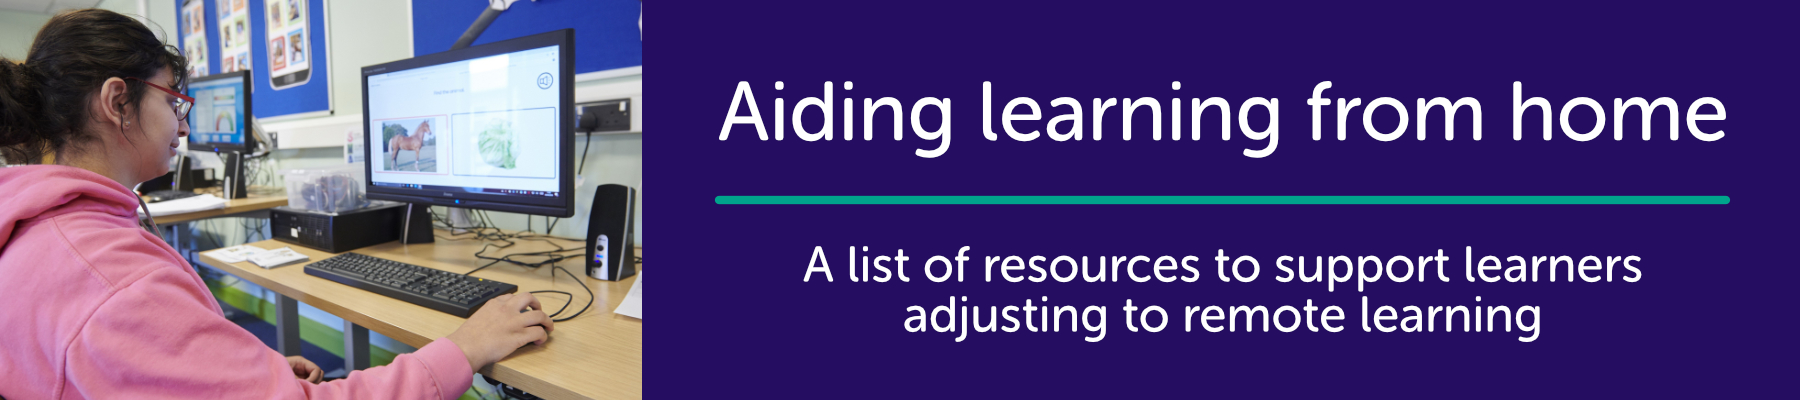 Aiding learning from home: A list of resources to support learners adjusting to remote learning